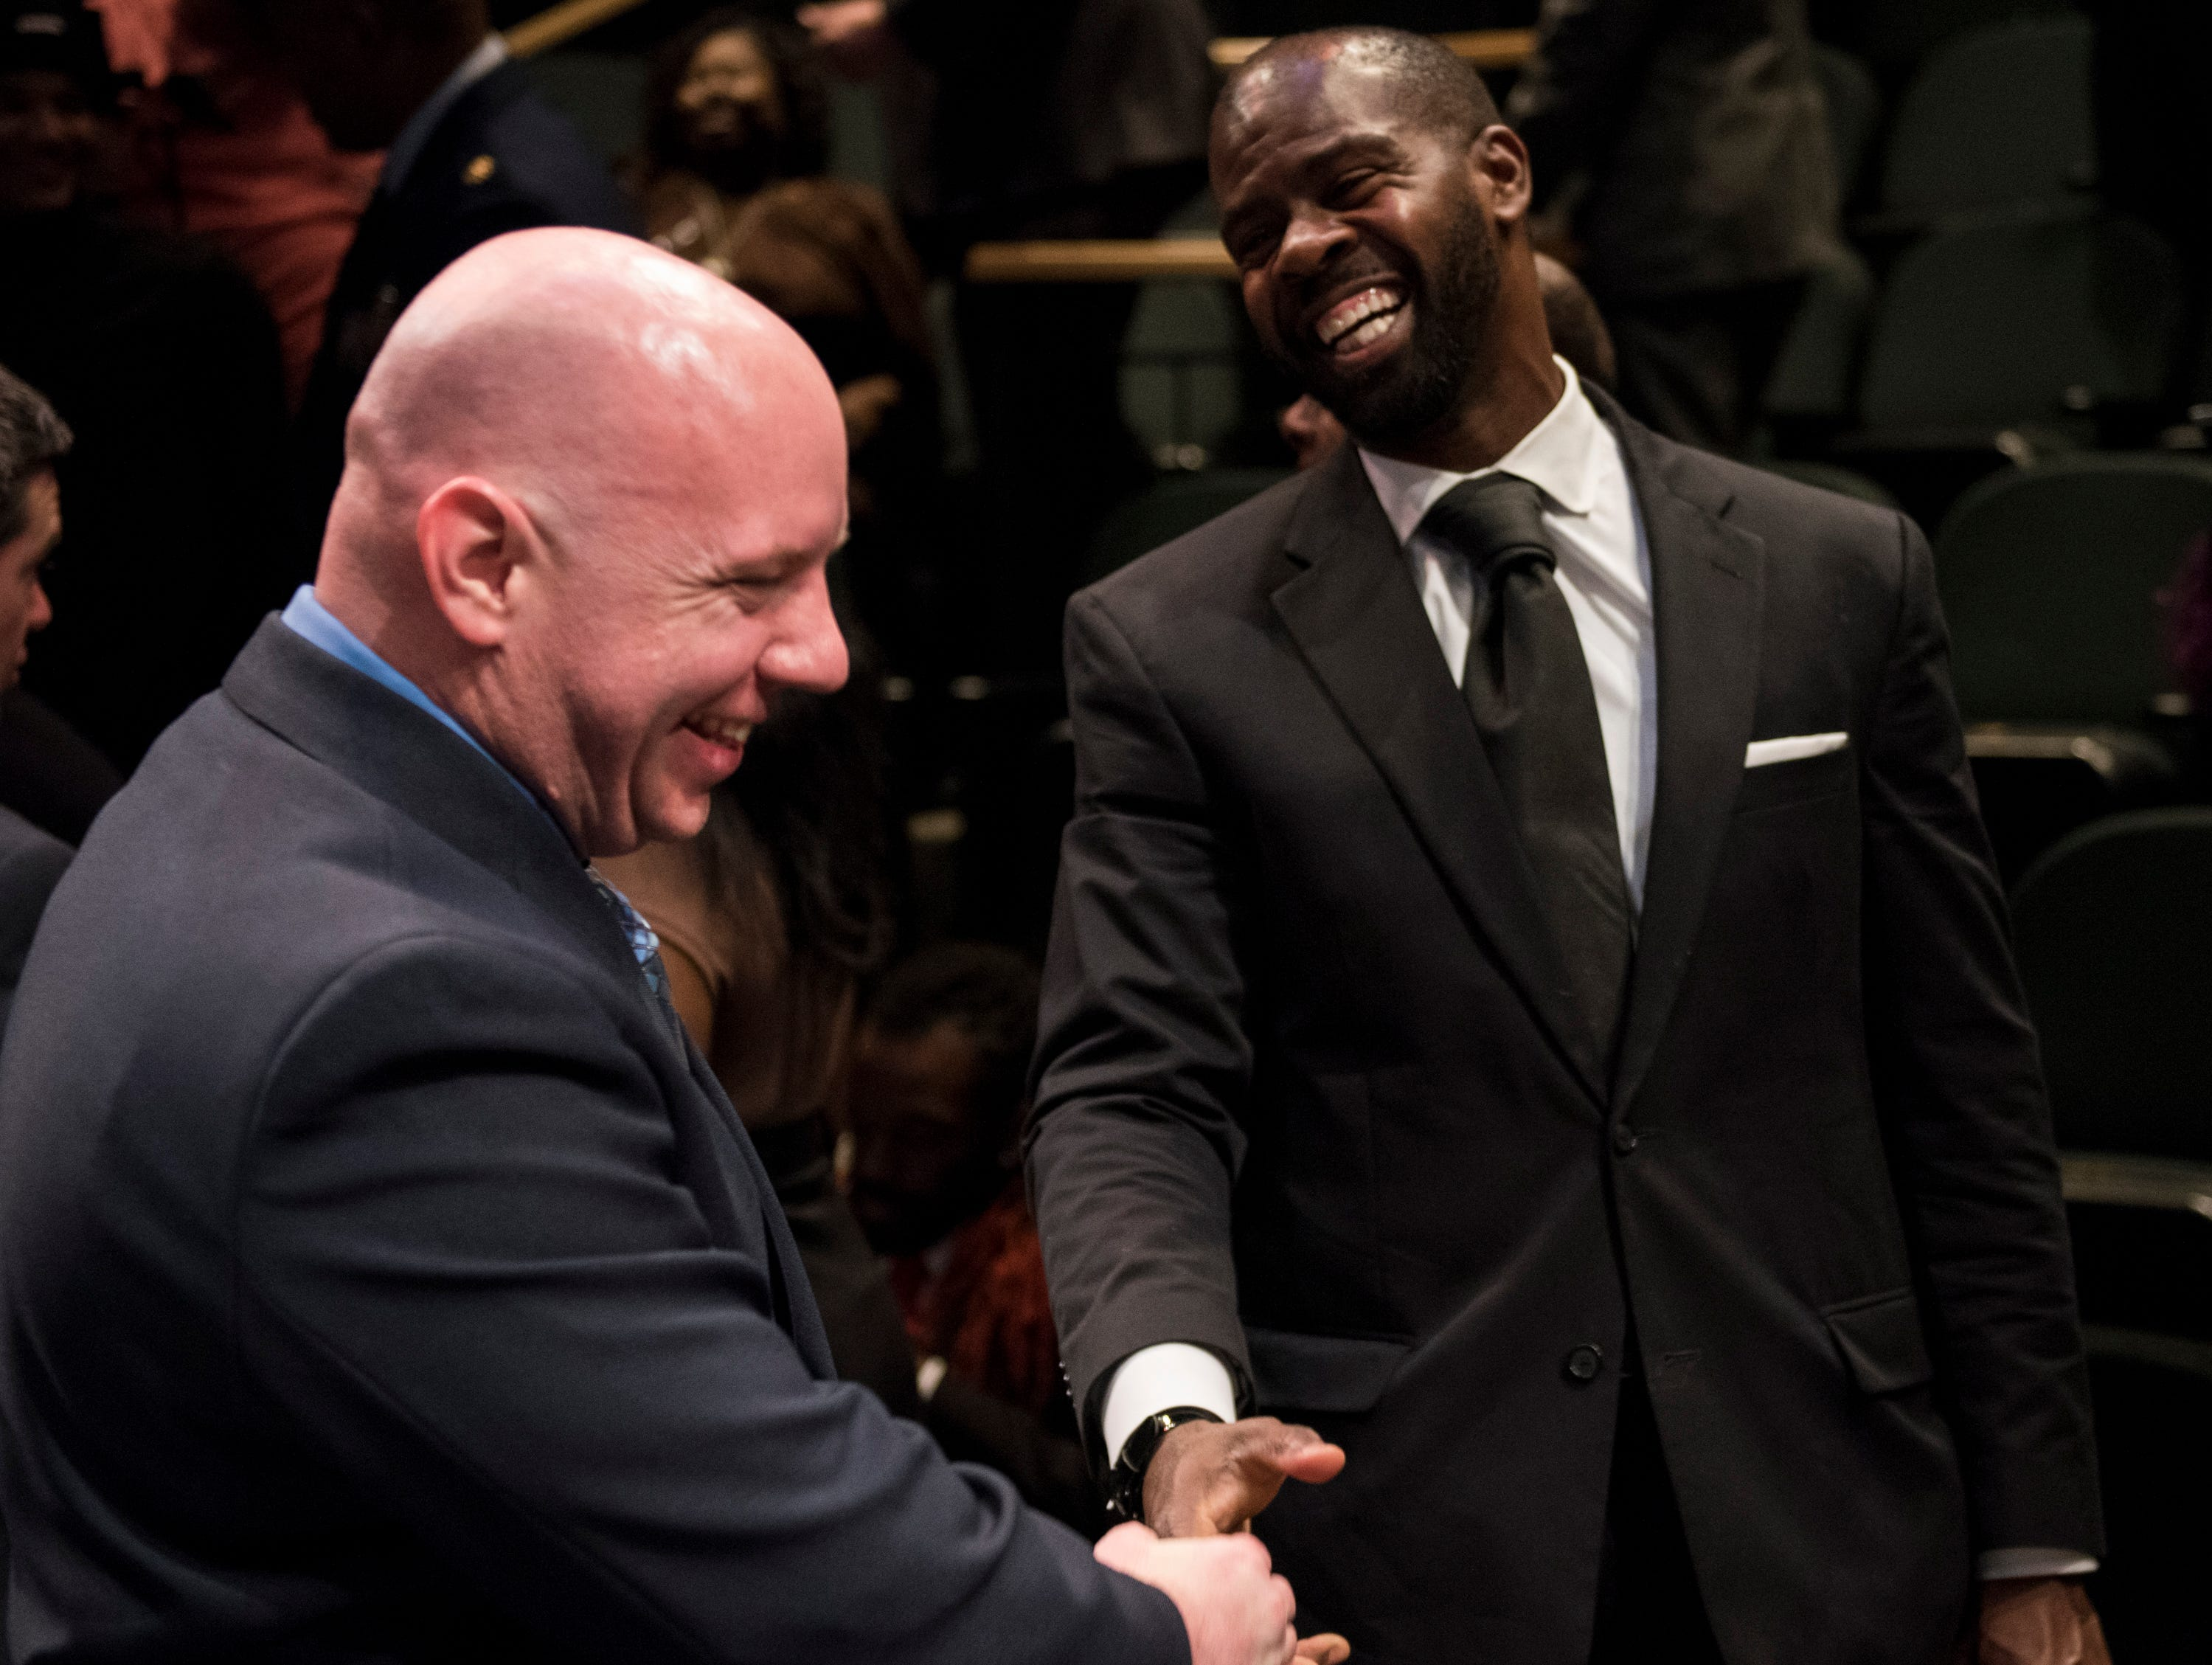 Community Heroes Bryan Goza and Thomas Tullis joke during the Community Heroes awards ceremony at Alabama Shakespeare Festival in Montgomery, Ala., on Tuesday, Jan. 8, 2019.